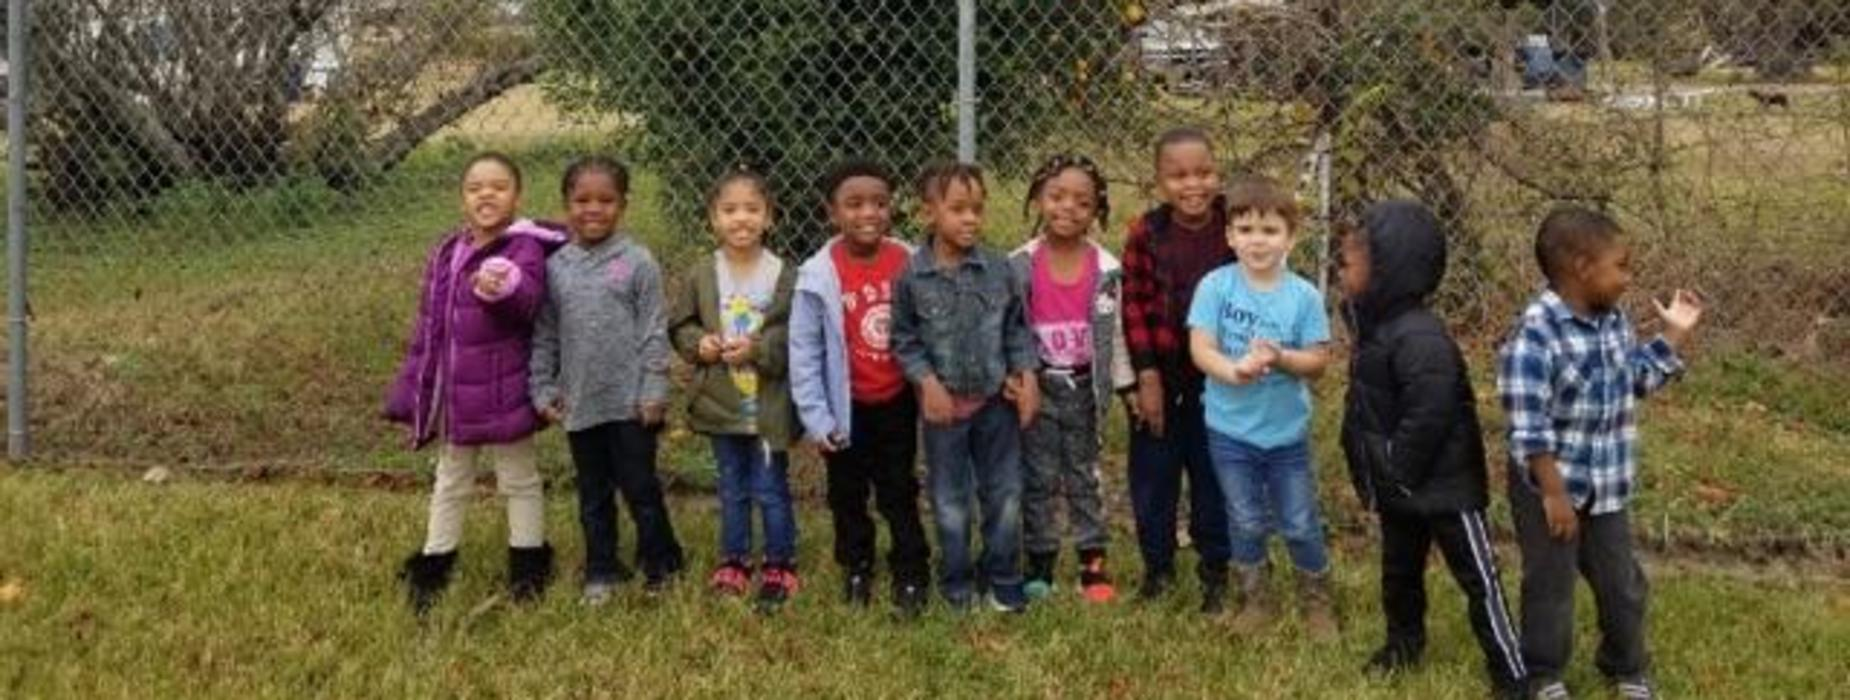 The children in Ms. Martin's class at LeBeau Head Start observed and discussed the characteristics of tree bark and a bird's nest as part of their lesson.